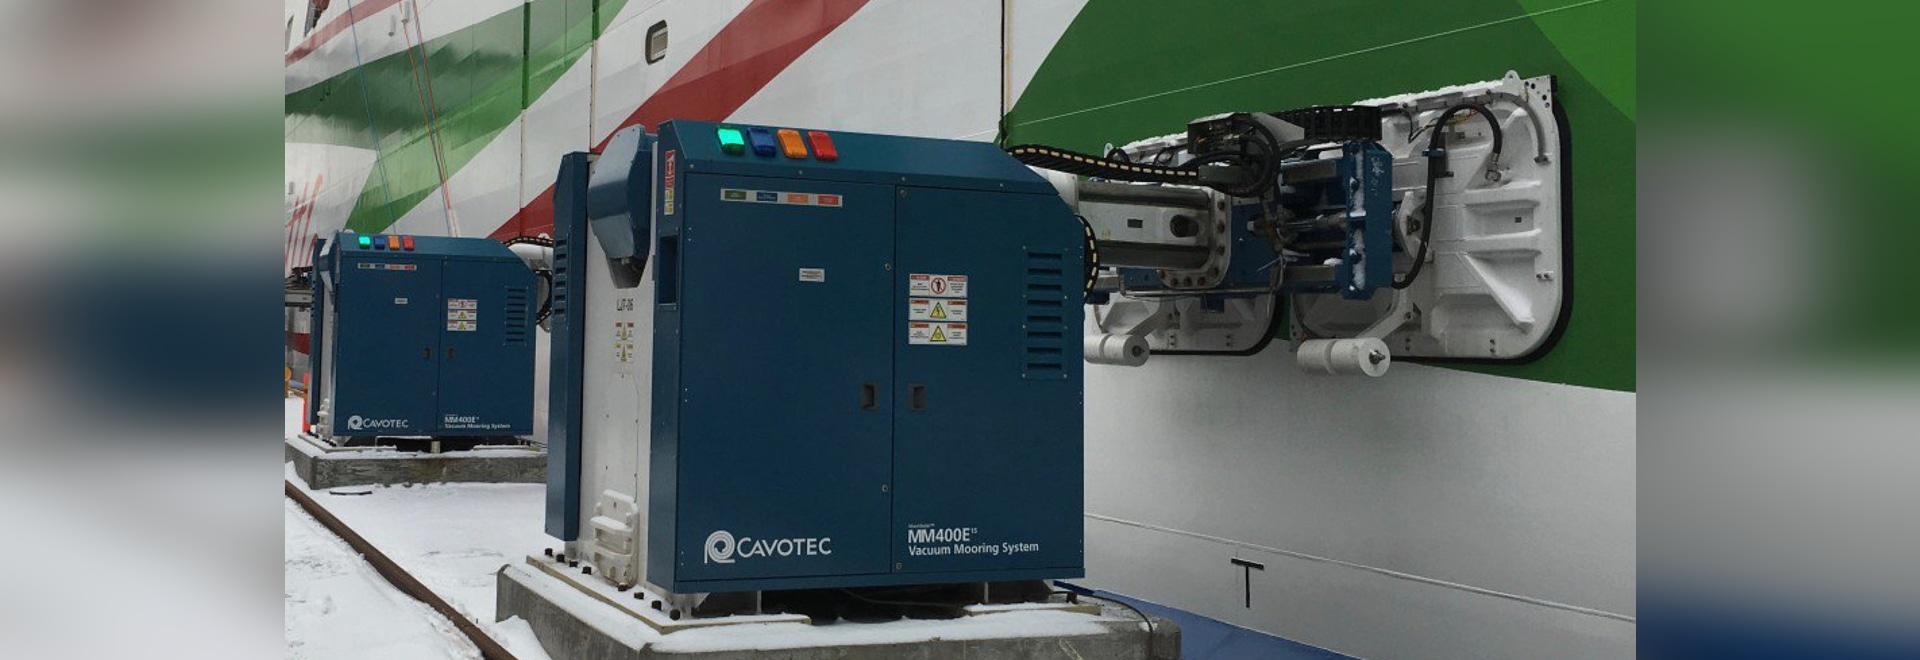 Cavotec wins automated mooring order in Finland